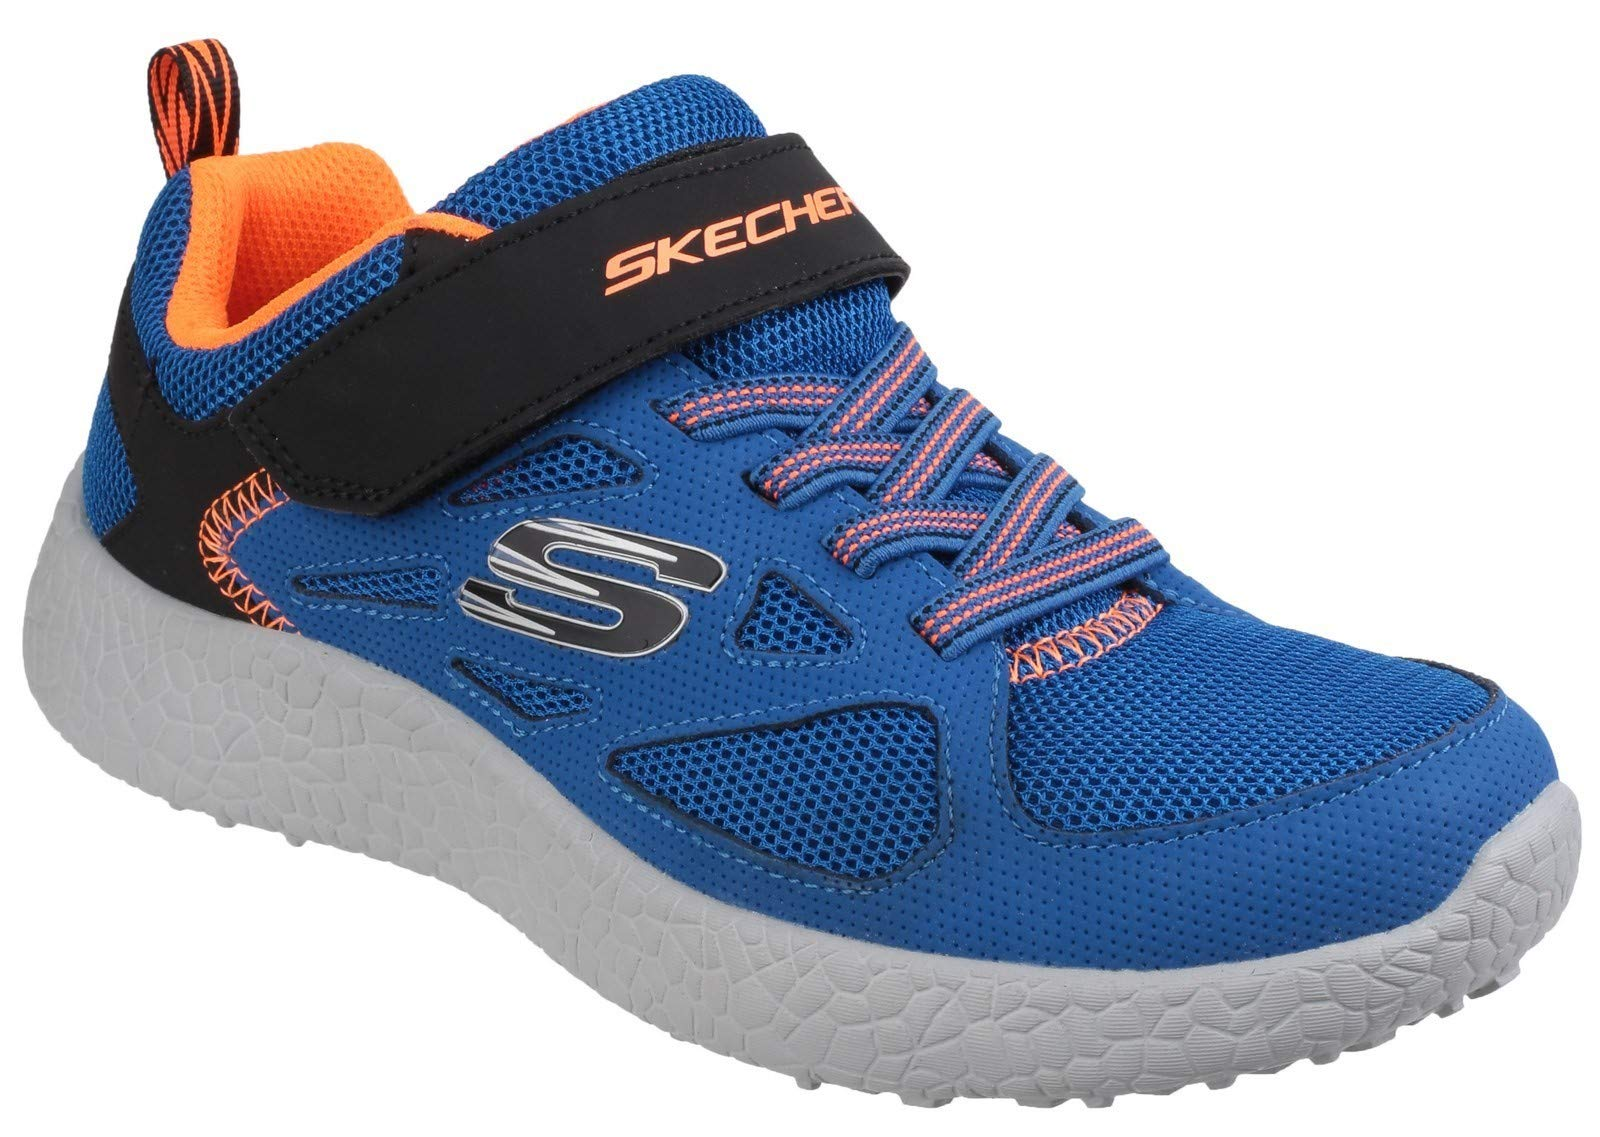 Skechers Kids Burst Power Sprints Trainer Blue Black Size UK 11.5 EU 29